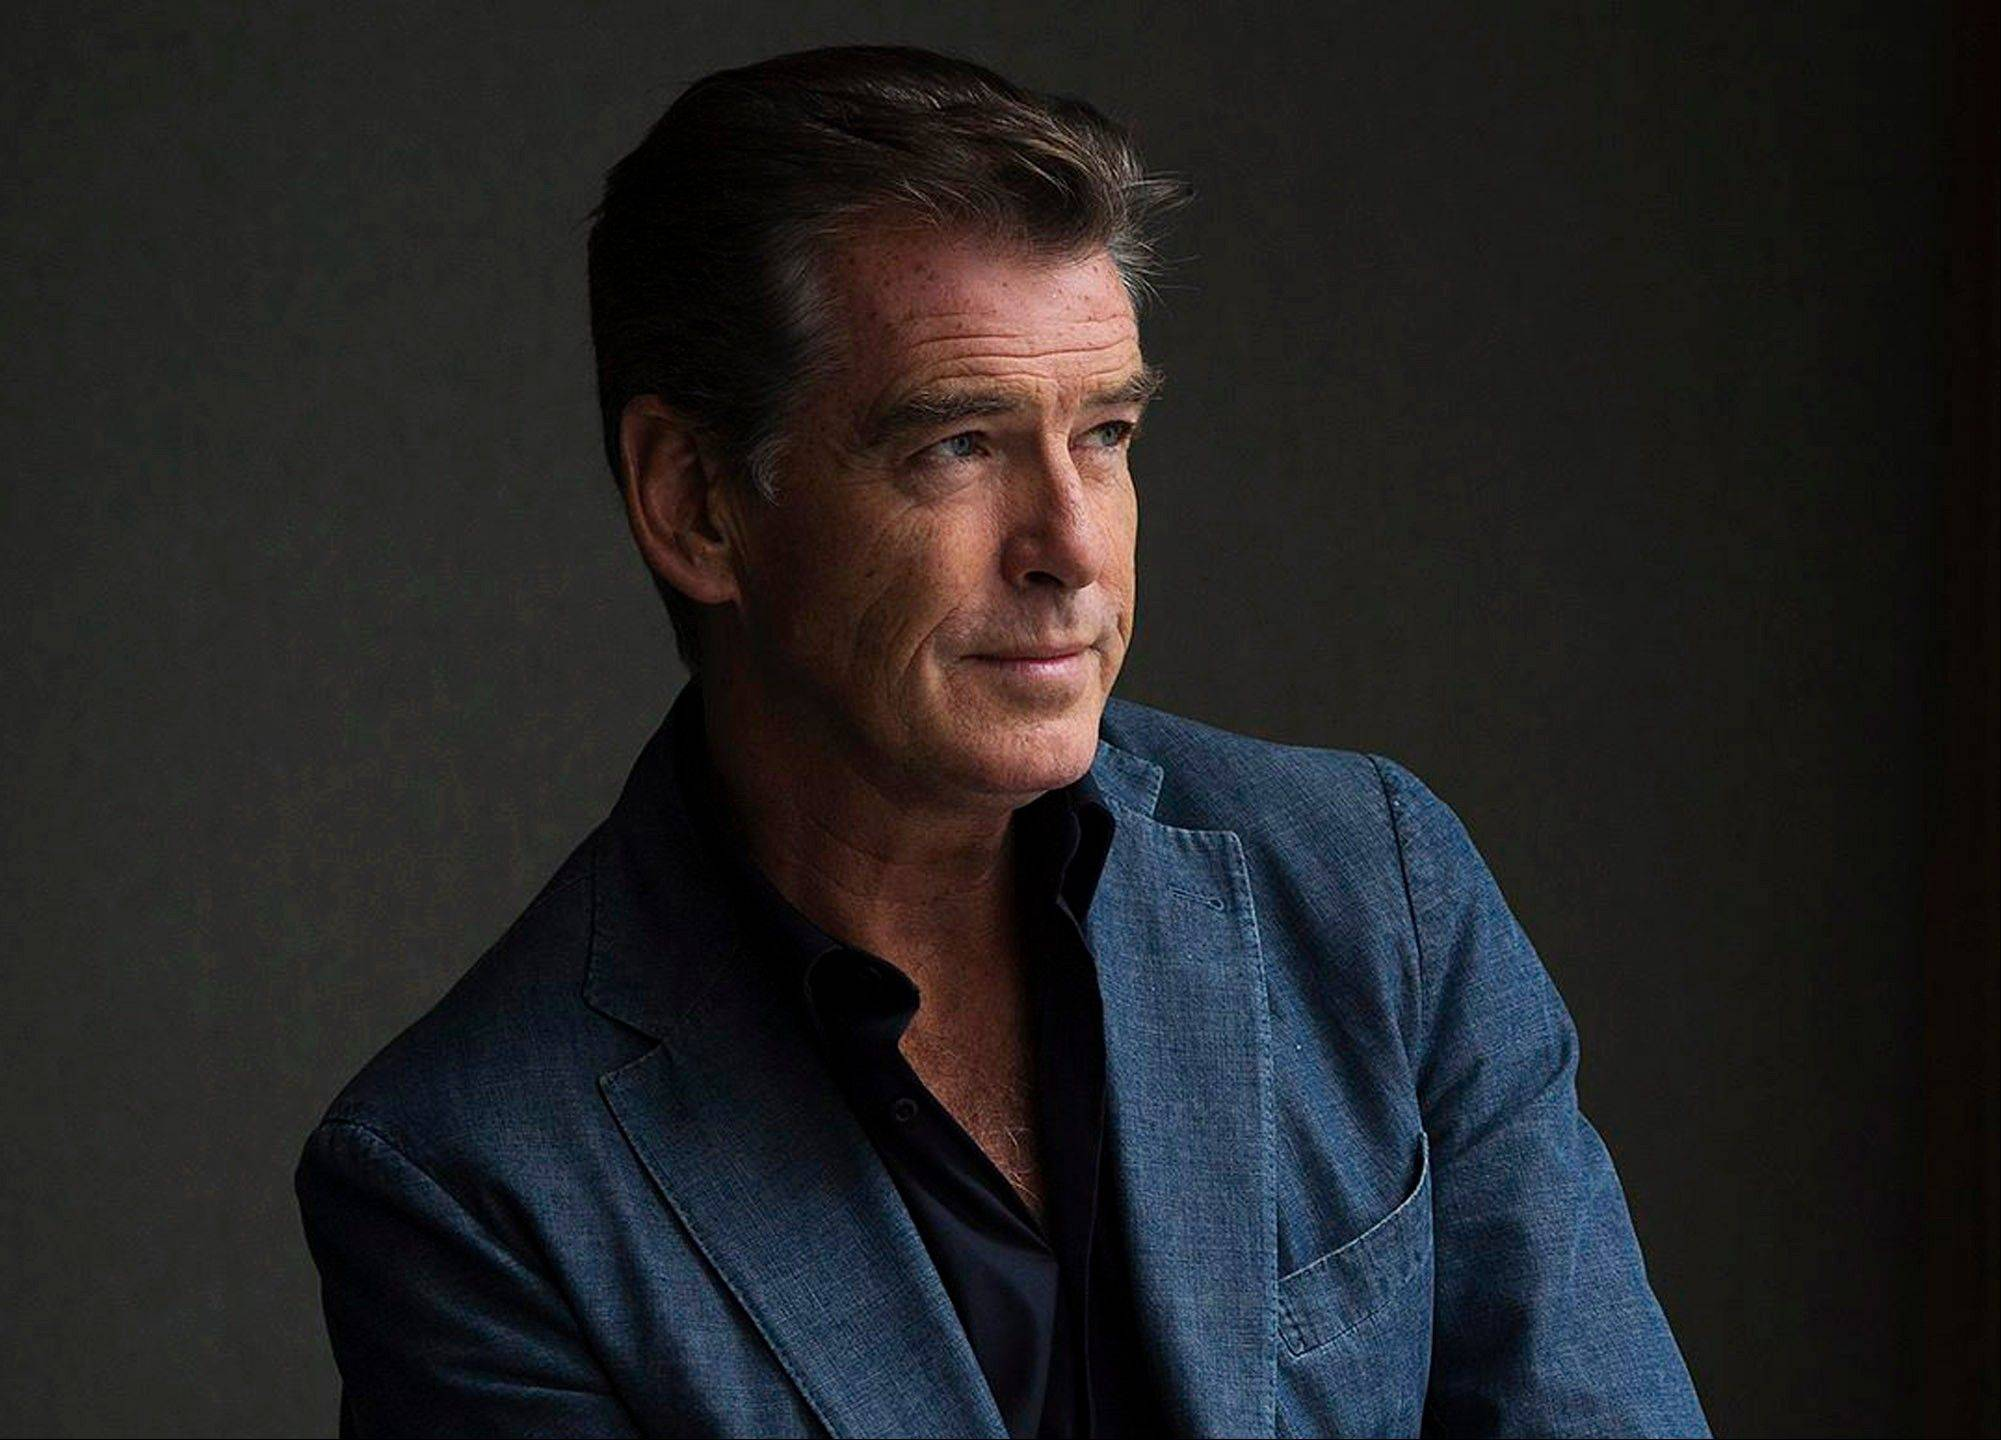 Pierce Brosnan's daughter Charlotte died in London on June 28 after battling ovarian cancer, his publicist confirms.